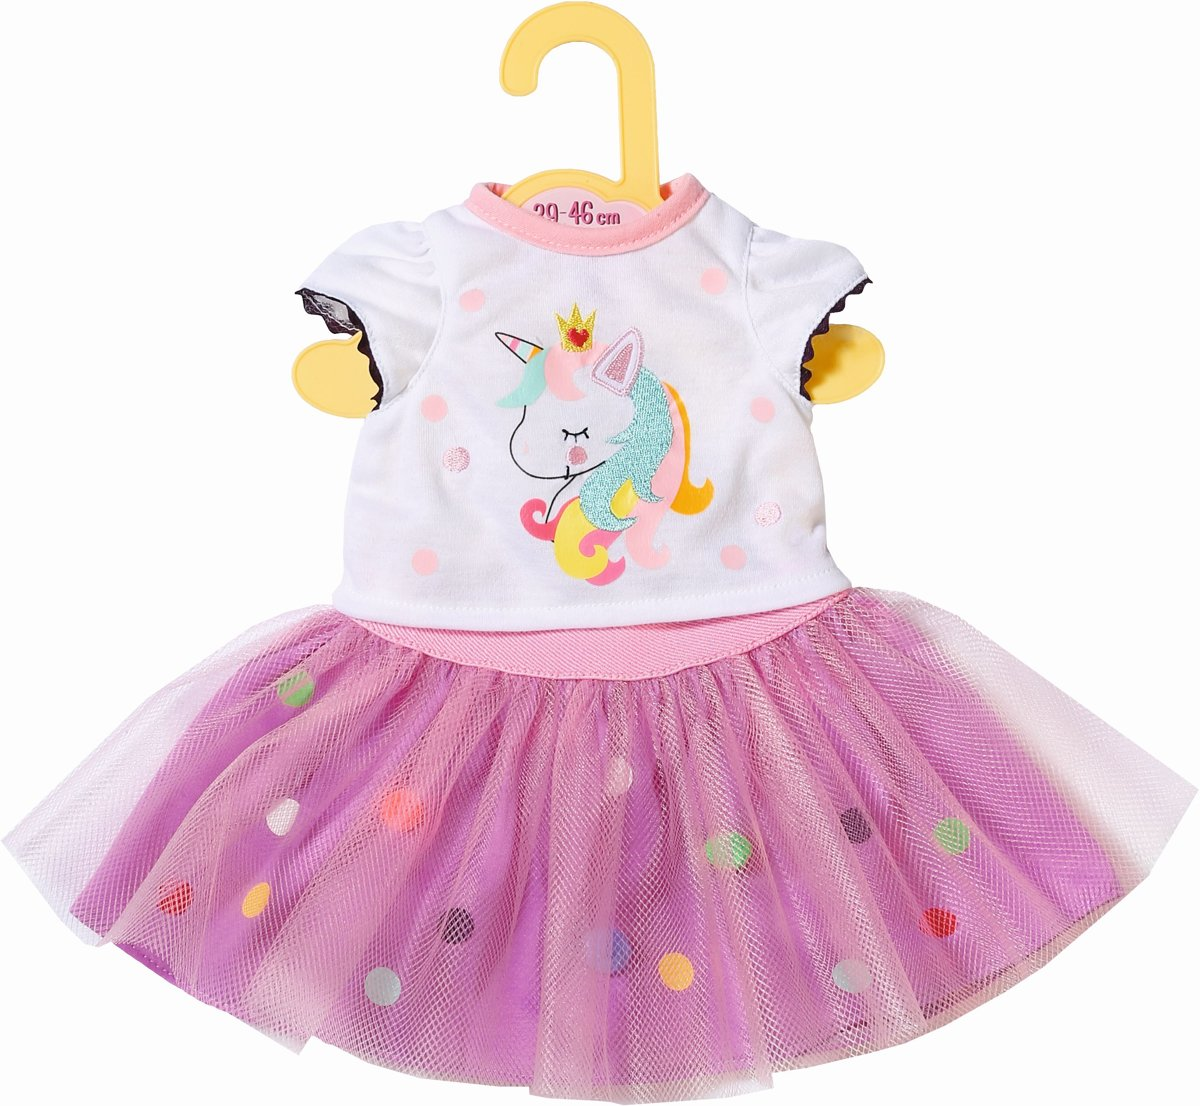 Dolly Moda Unicorn Shirt with Tutu 43cm